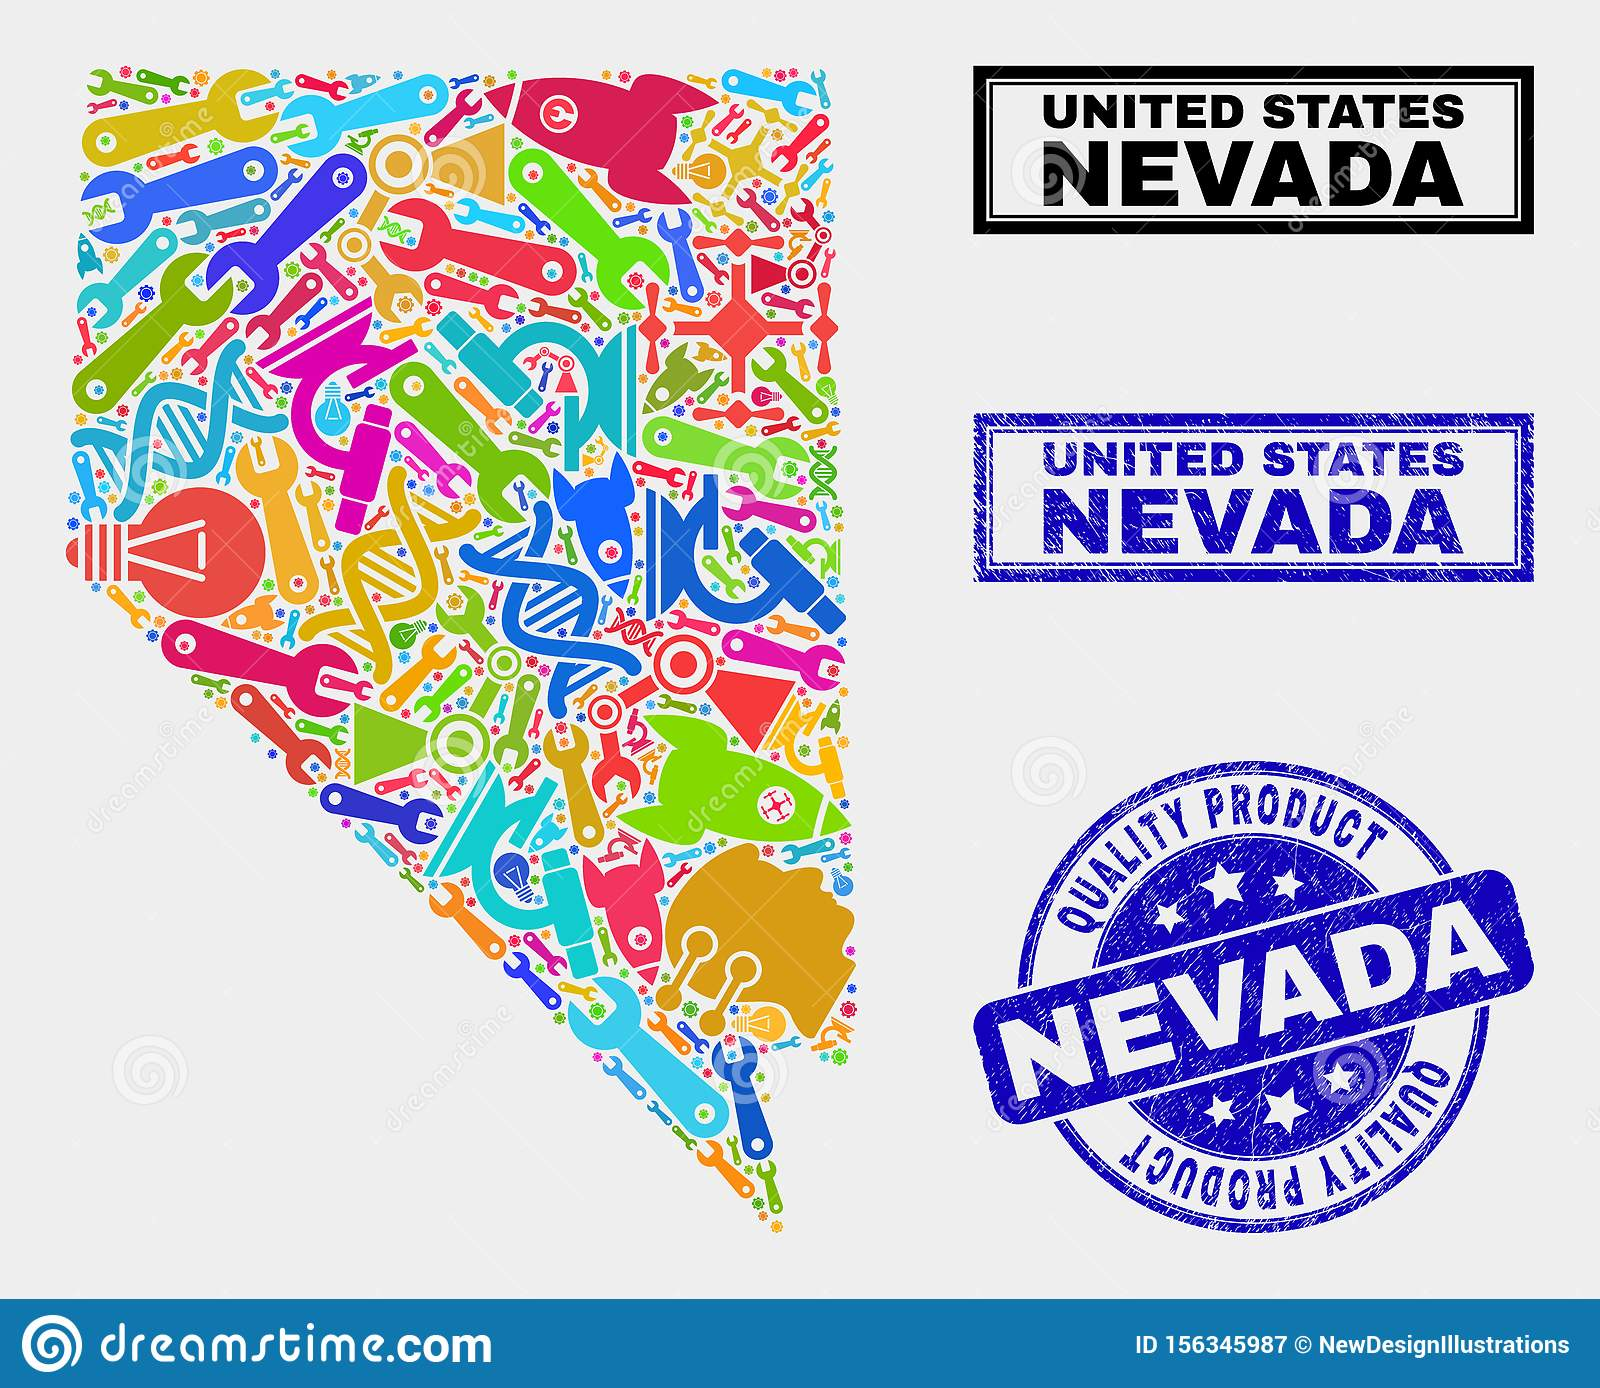 Collage Of Service Nevada State Map And Quality Product ...